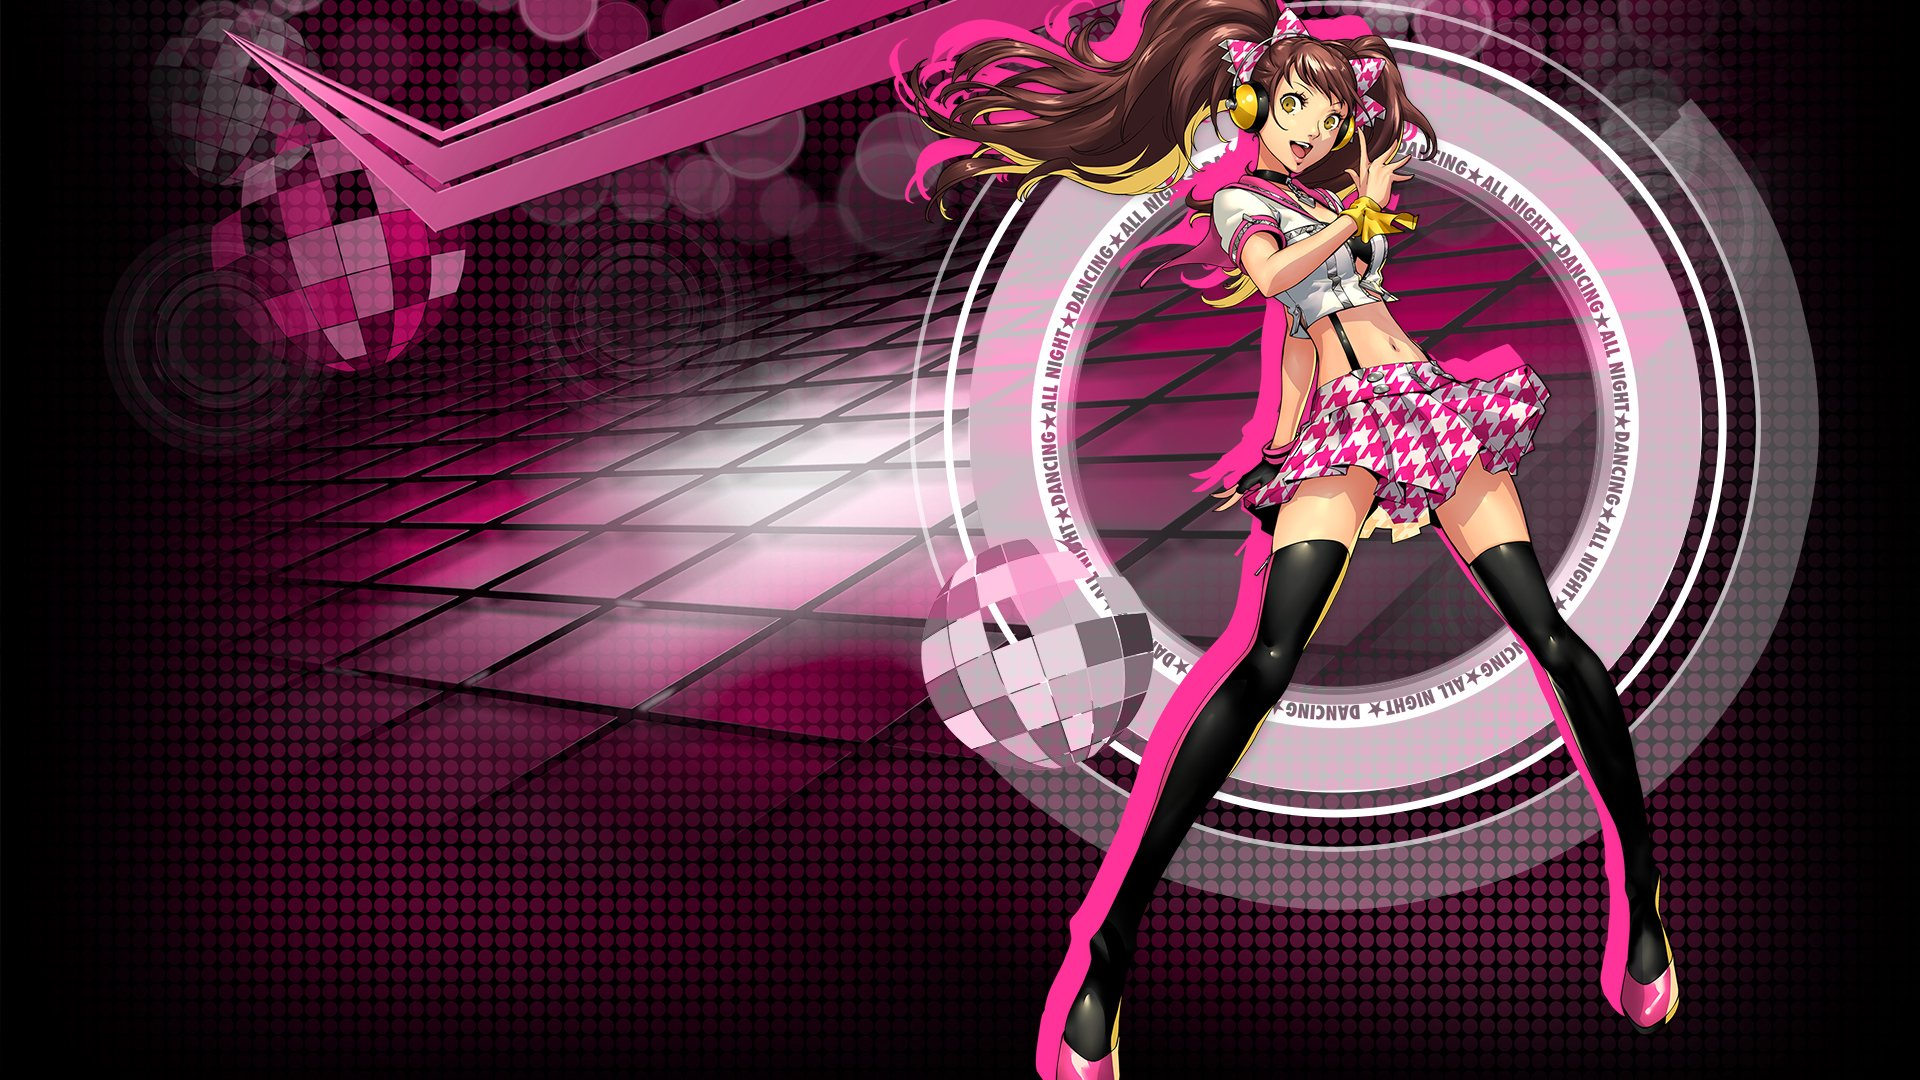 Persona 4 Dancing All Night Rise Kujikawa Hd Wallpaper